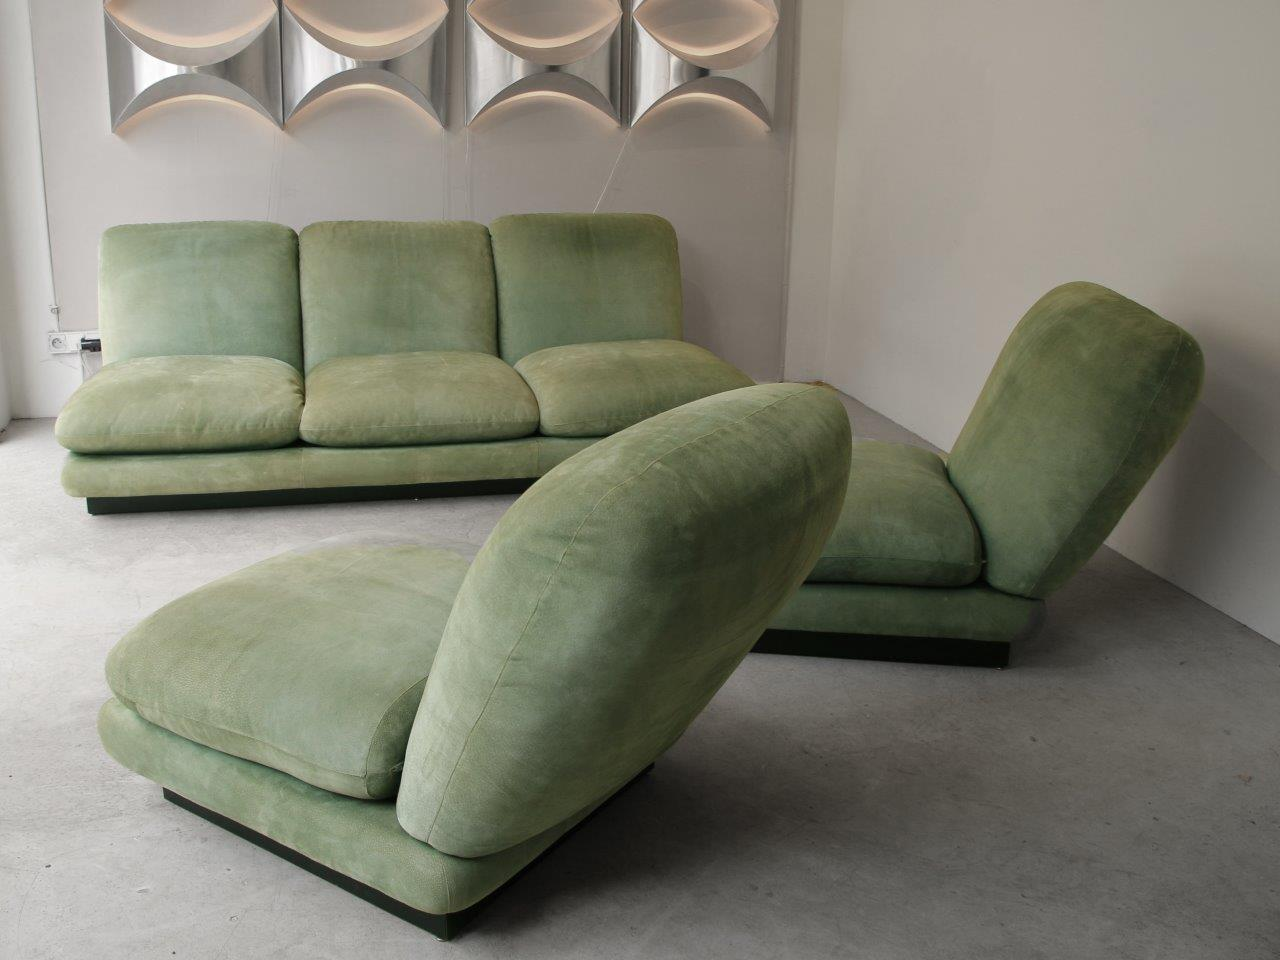 willy rizzo canap et chauffeuses fauteuils en p cari vert jade ann es 70 paul bert serpette. Black Bedroom Furniture Sets. Home Design Ideas